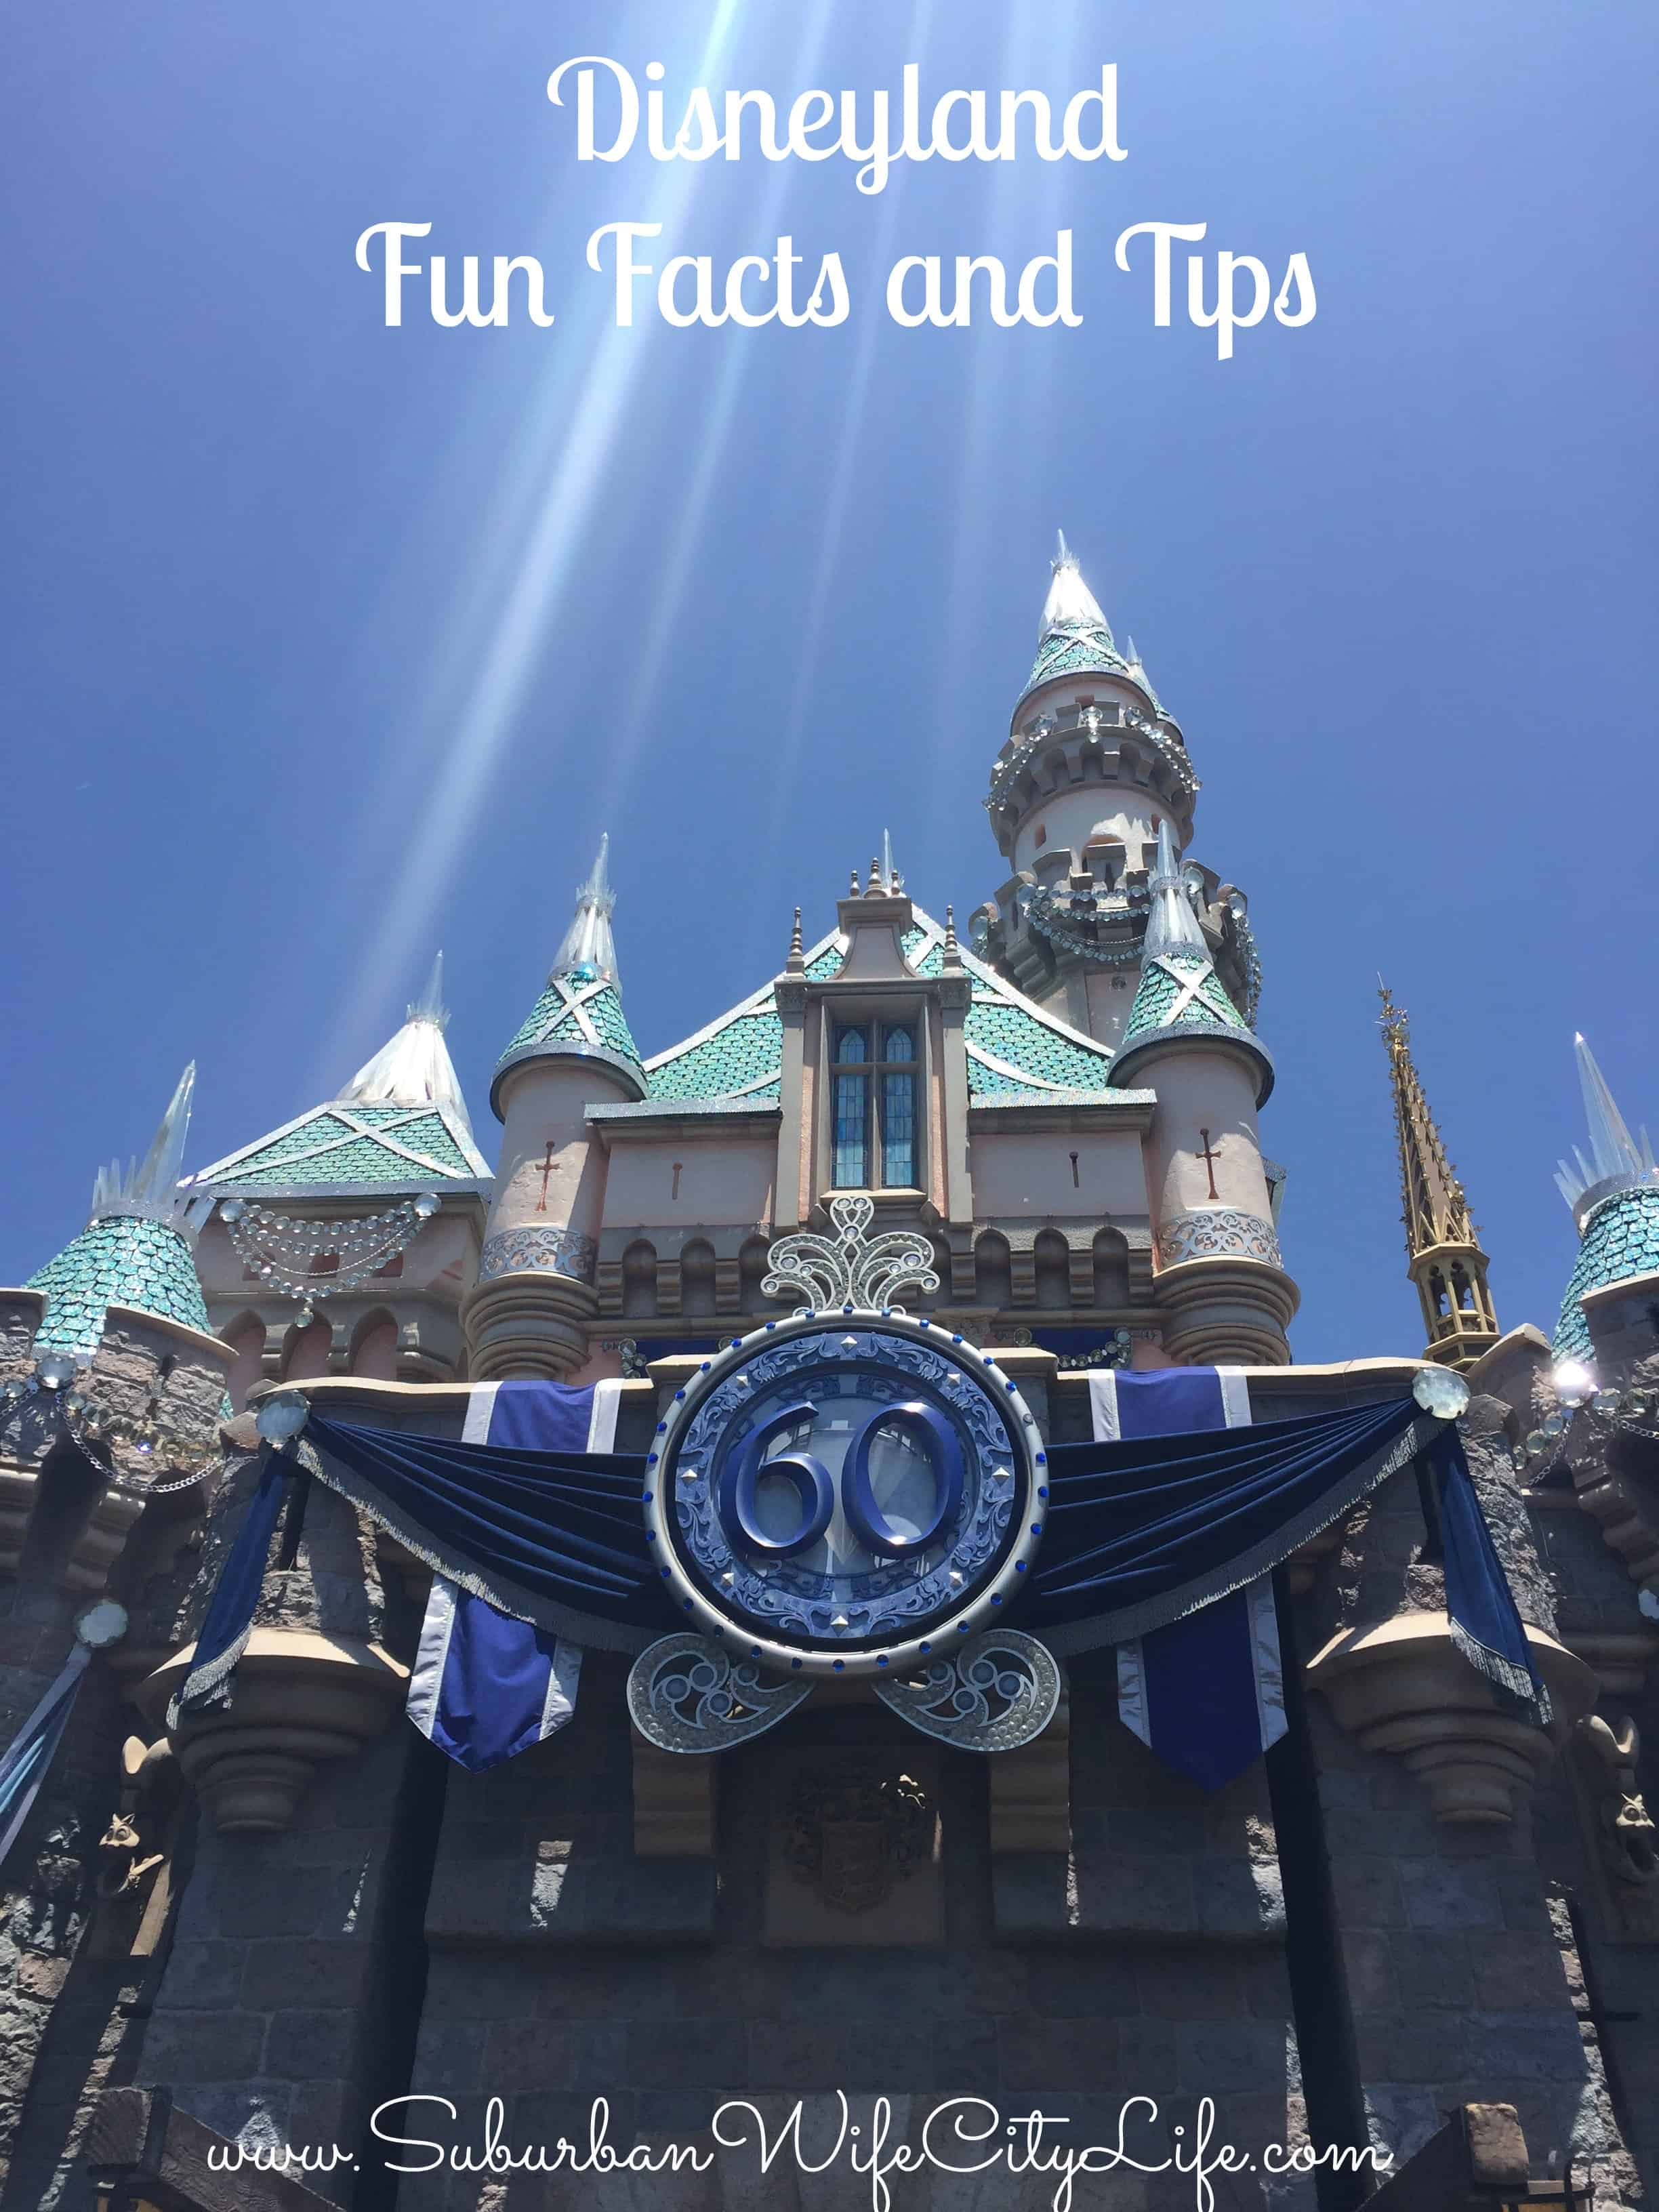 Disneyland Fun Facts & Tips